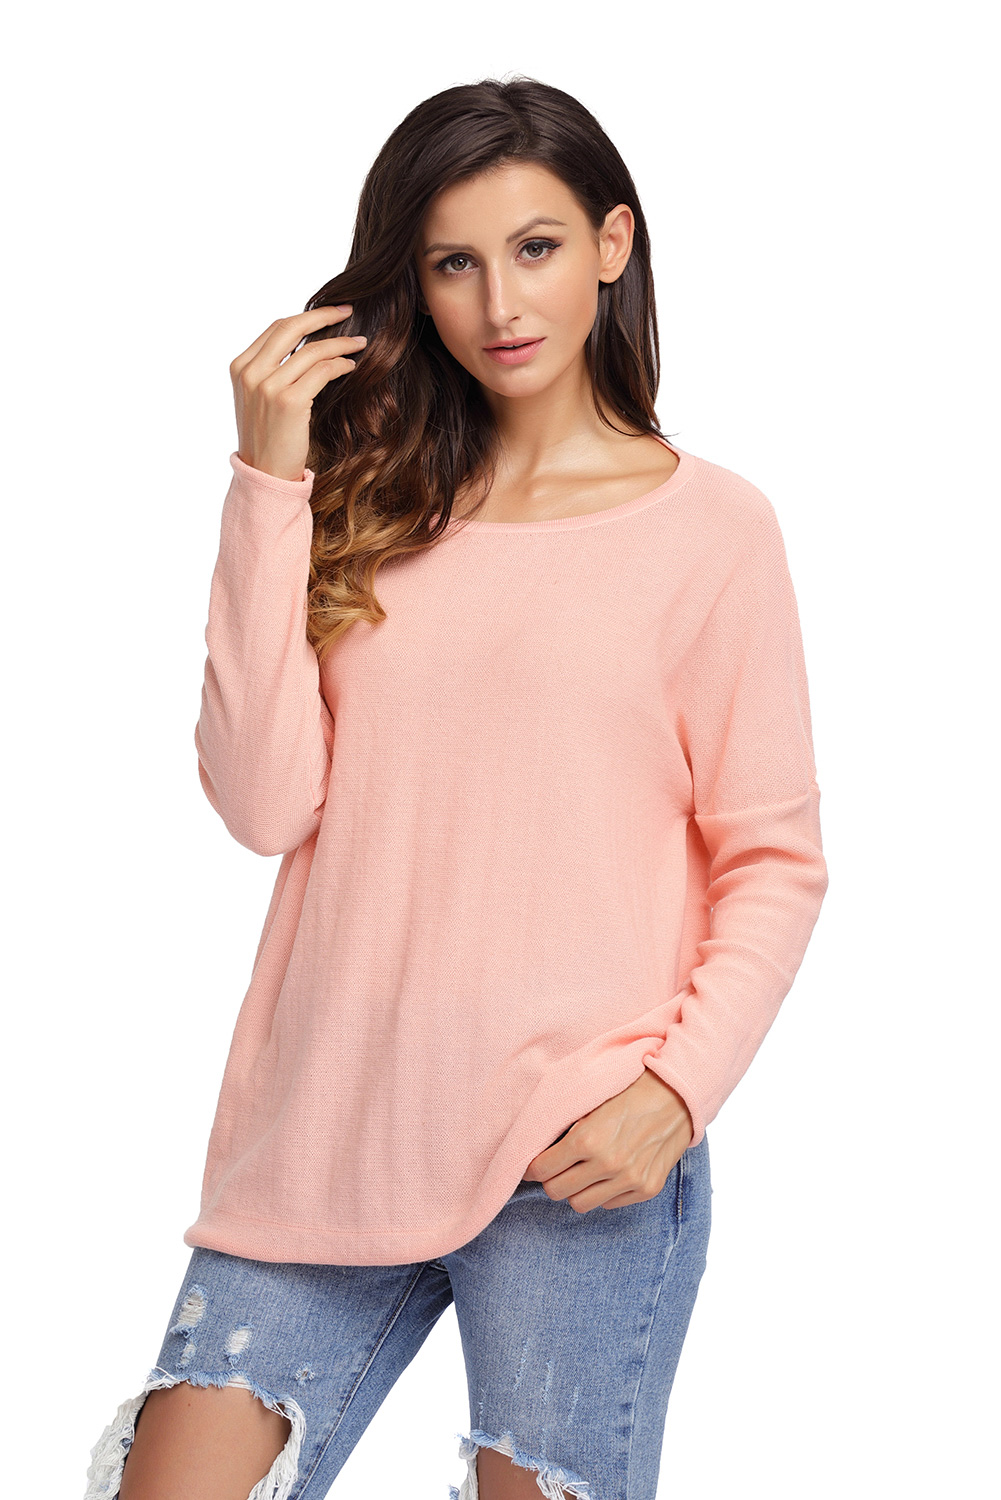 24f5280fe8c Salmon Backless Twist Knit Long Sleeve Dolman Top  style  fashion   boutiquefashion  victoryroze  wearevictoryroze  ladiesfashion  dress   clothes  ootd  wwt ...